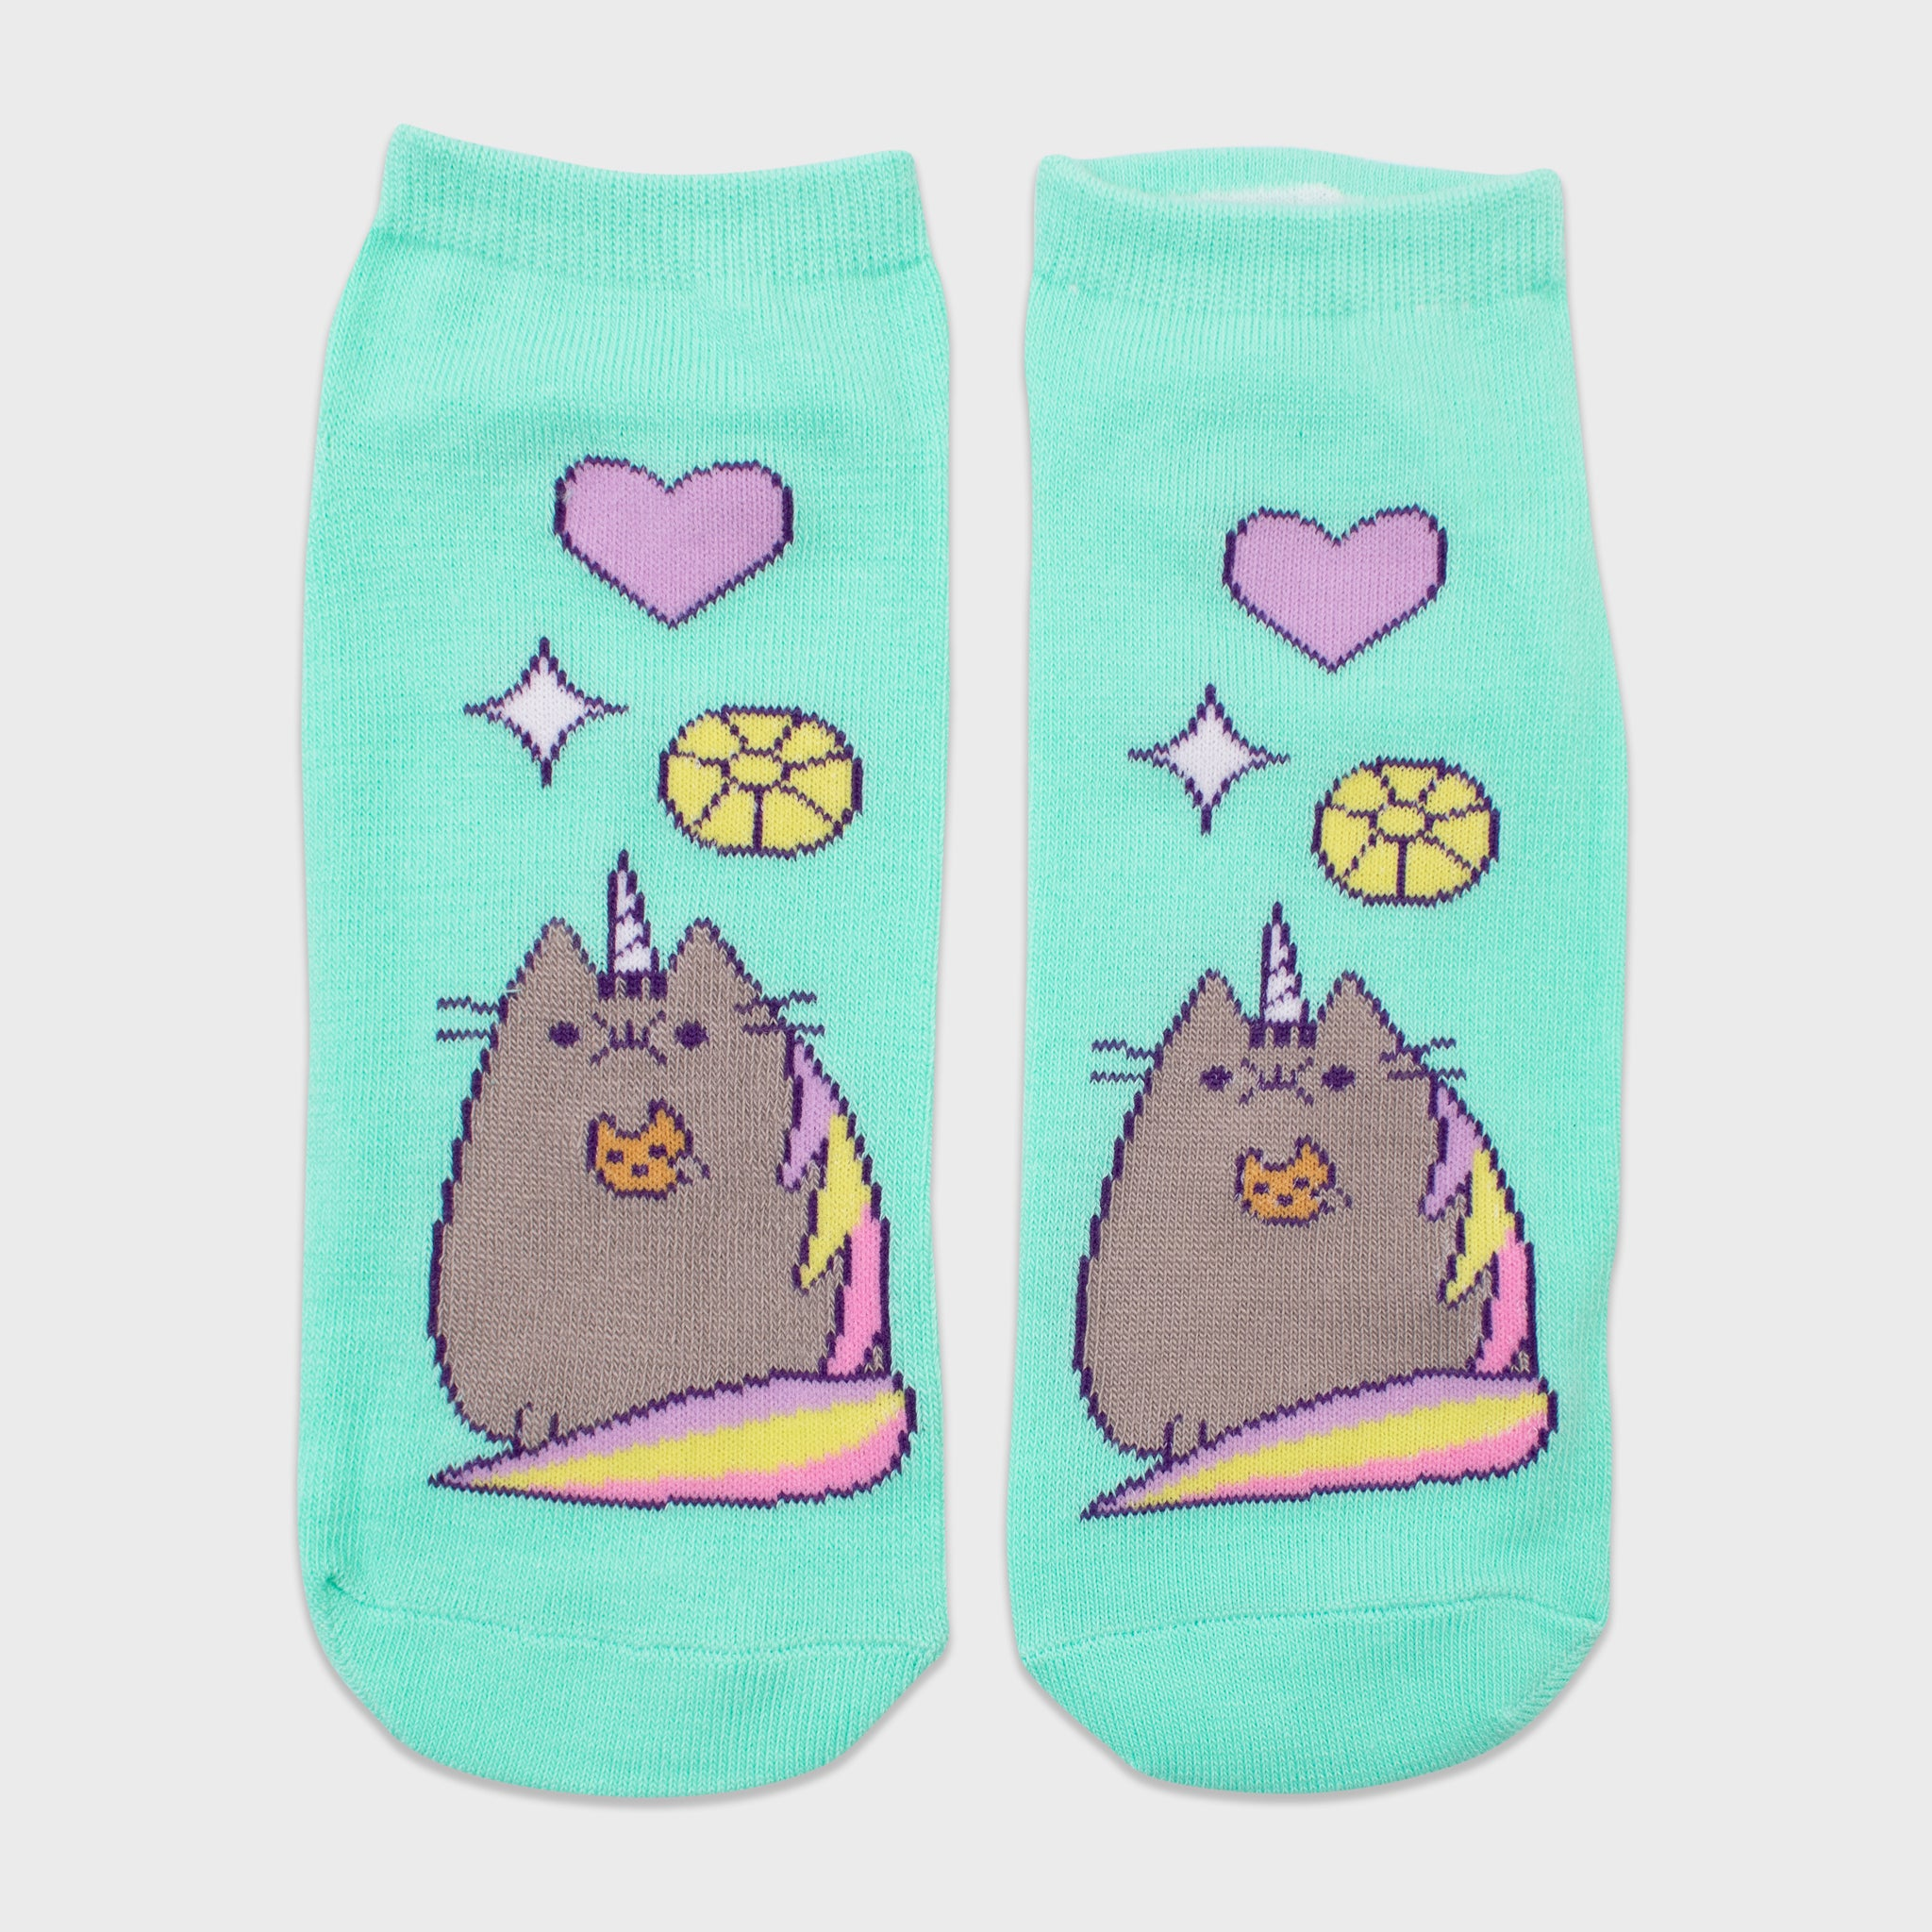 pusheen socks 2 pack pair unicorn pusheenicorn teal apparel accessory cute cat culturefly